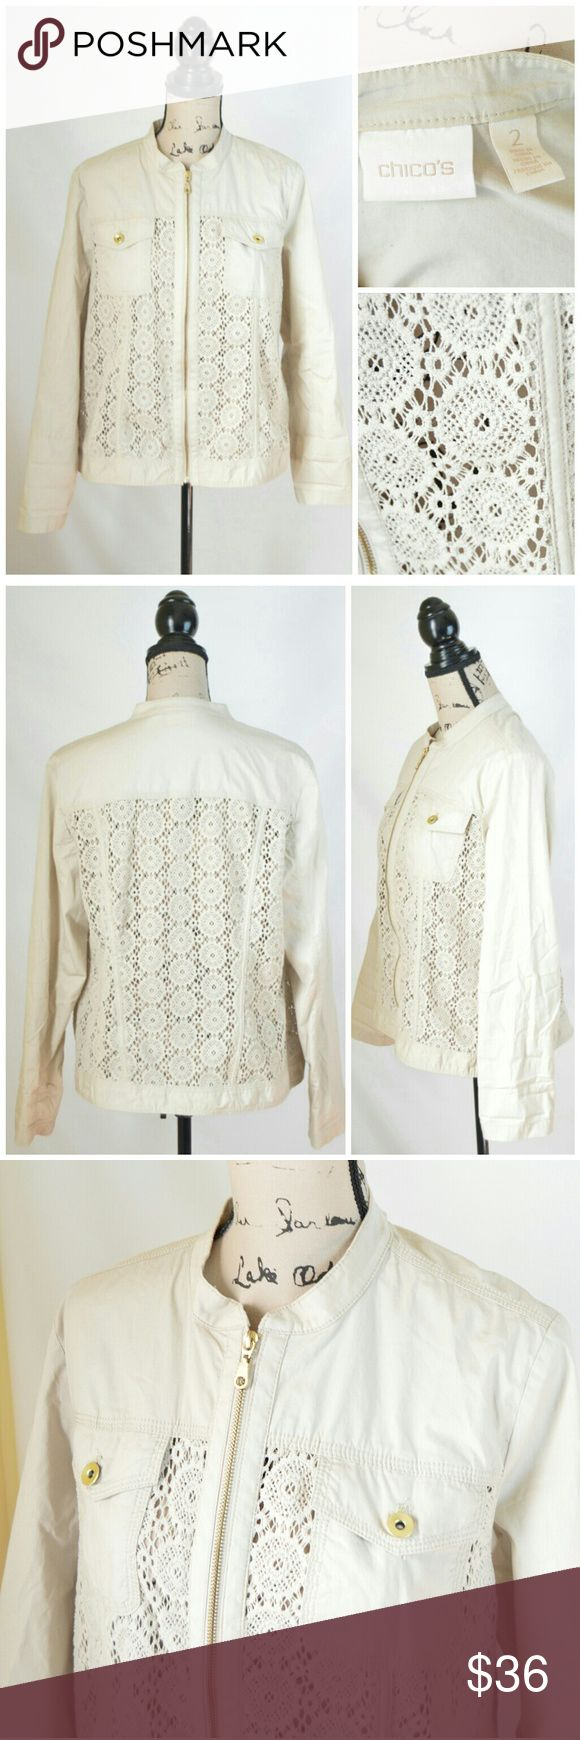 ❤ SALE Chico's Crocheted Zip Up Jacket Gently used in great condition Chico's Women's Beige Long Sleeve Crocheted Zip Up Jacket  Size: 2 (According to Chicos Size Chart this is a size Large or 12)  Chico's Jackets & Coats